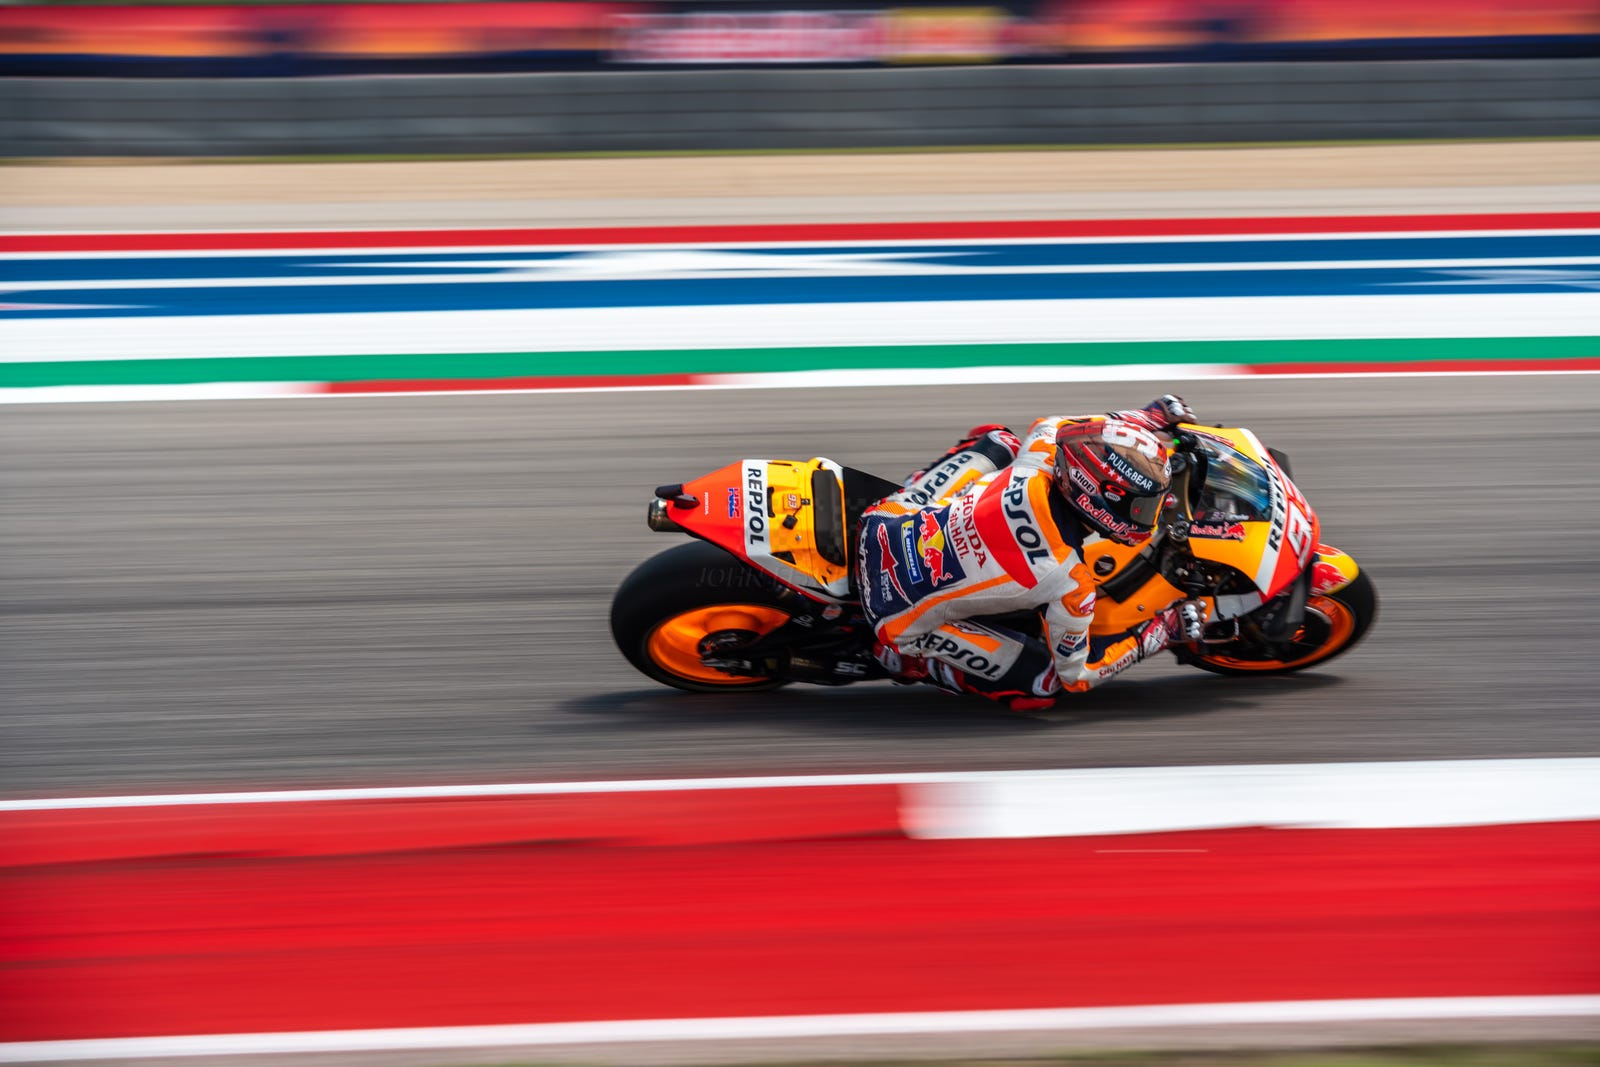 Illustration for article titled Rins Wins; Commandeers COTA Crown from Marquez during MotoGP Race